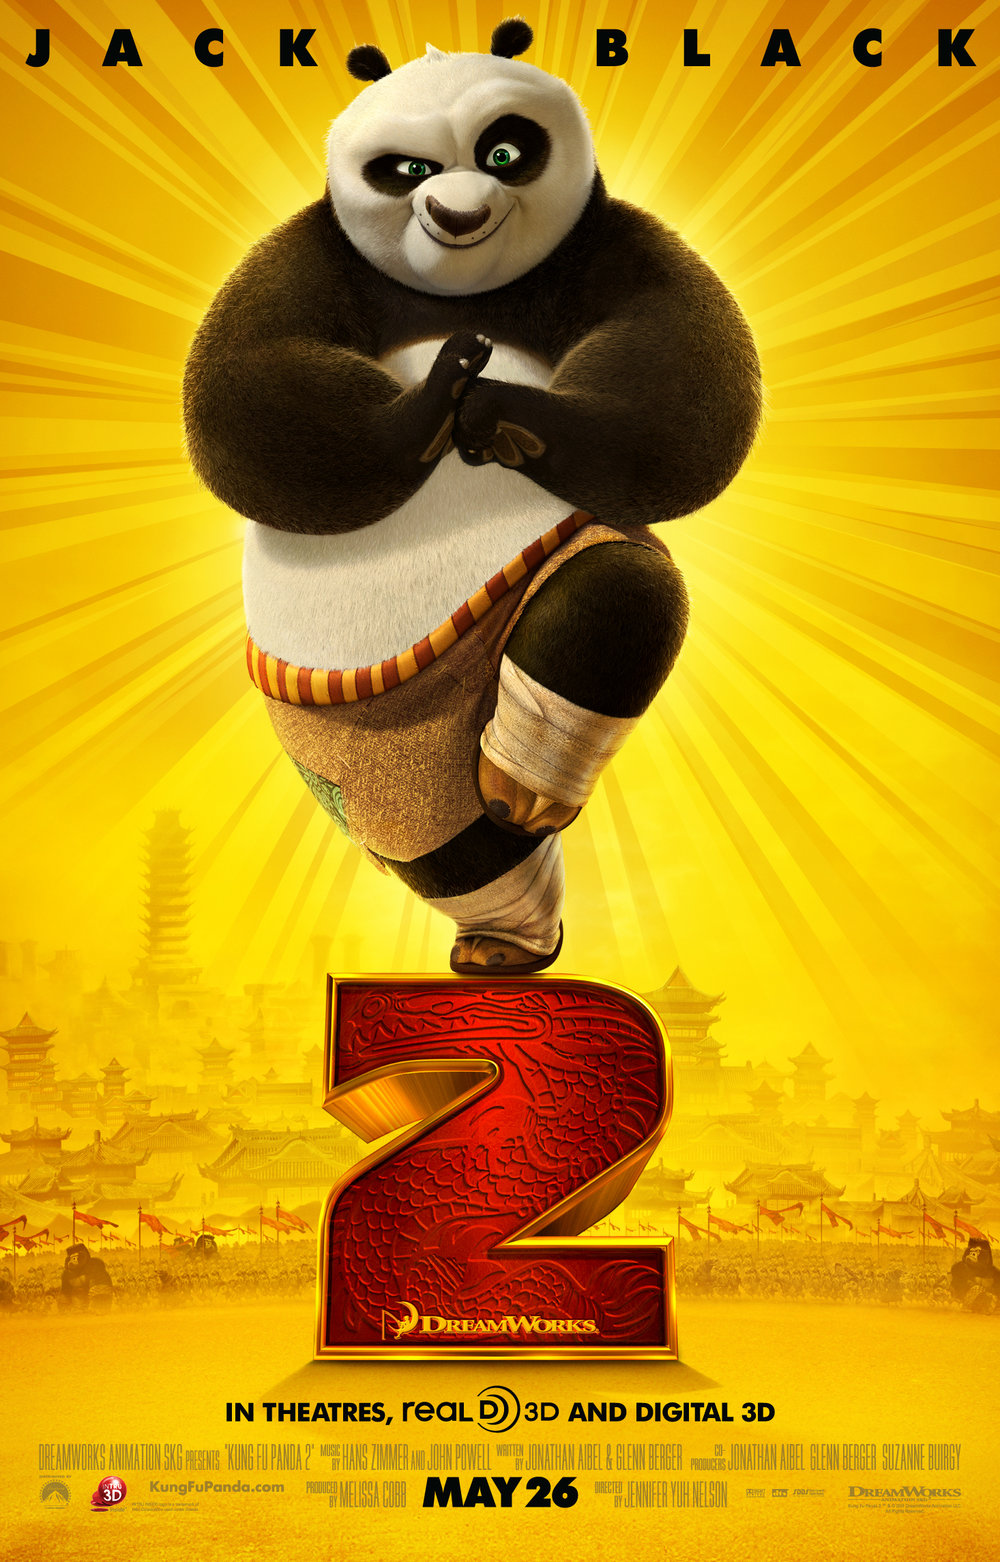 kung-fu-panda-movie-poster-03.jpg